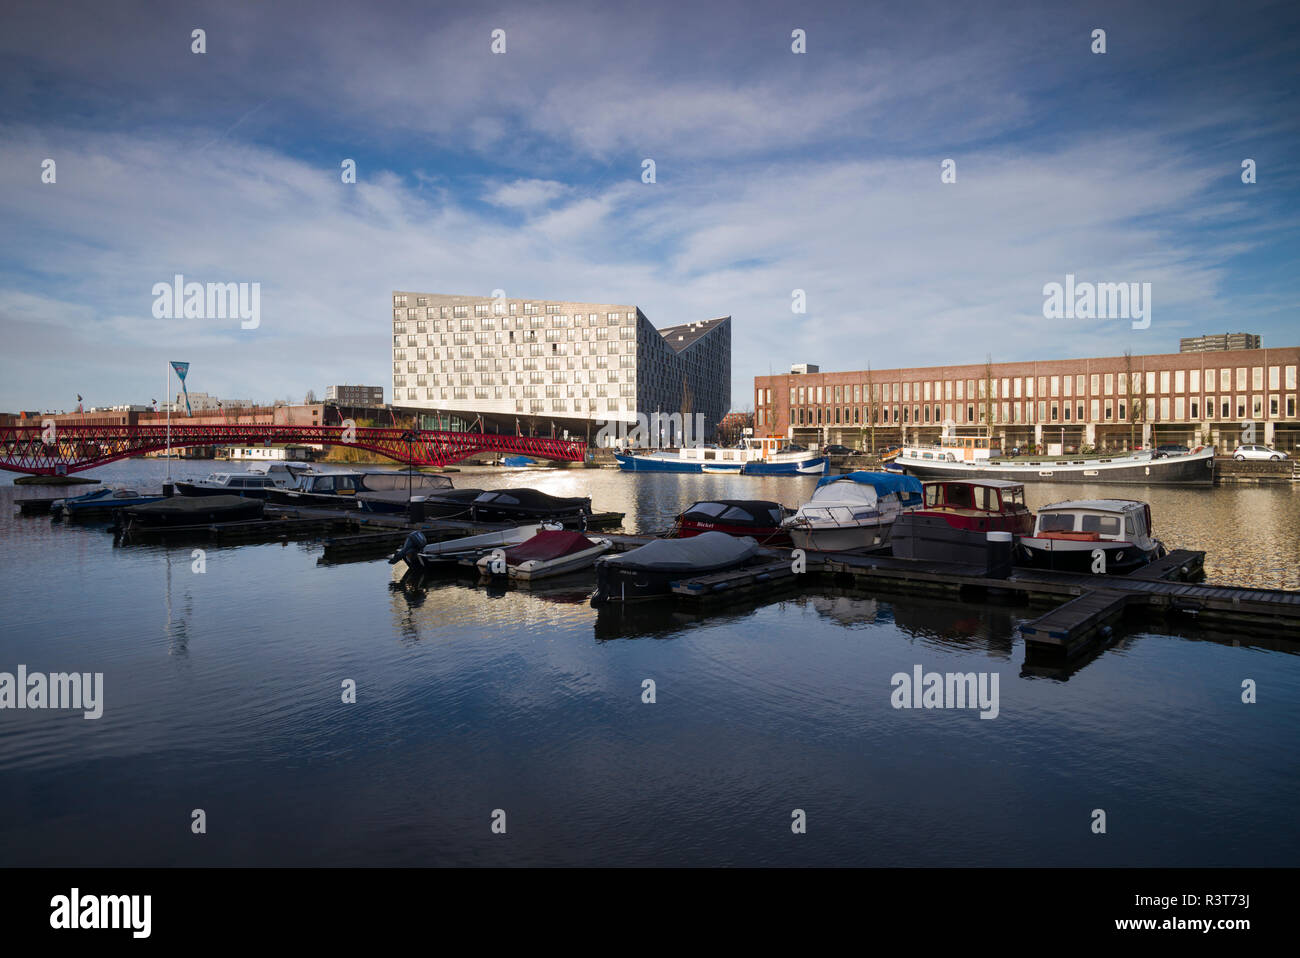 Netherlands, Amsterdam. Eastern Docklands, Spoorweg-basin with The Whale Building and renovated docklands area - Stock Image